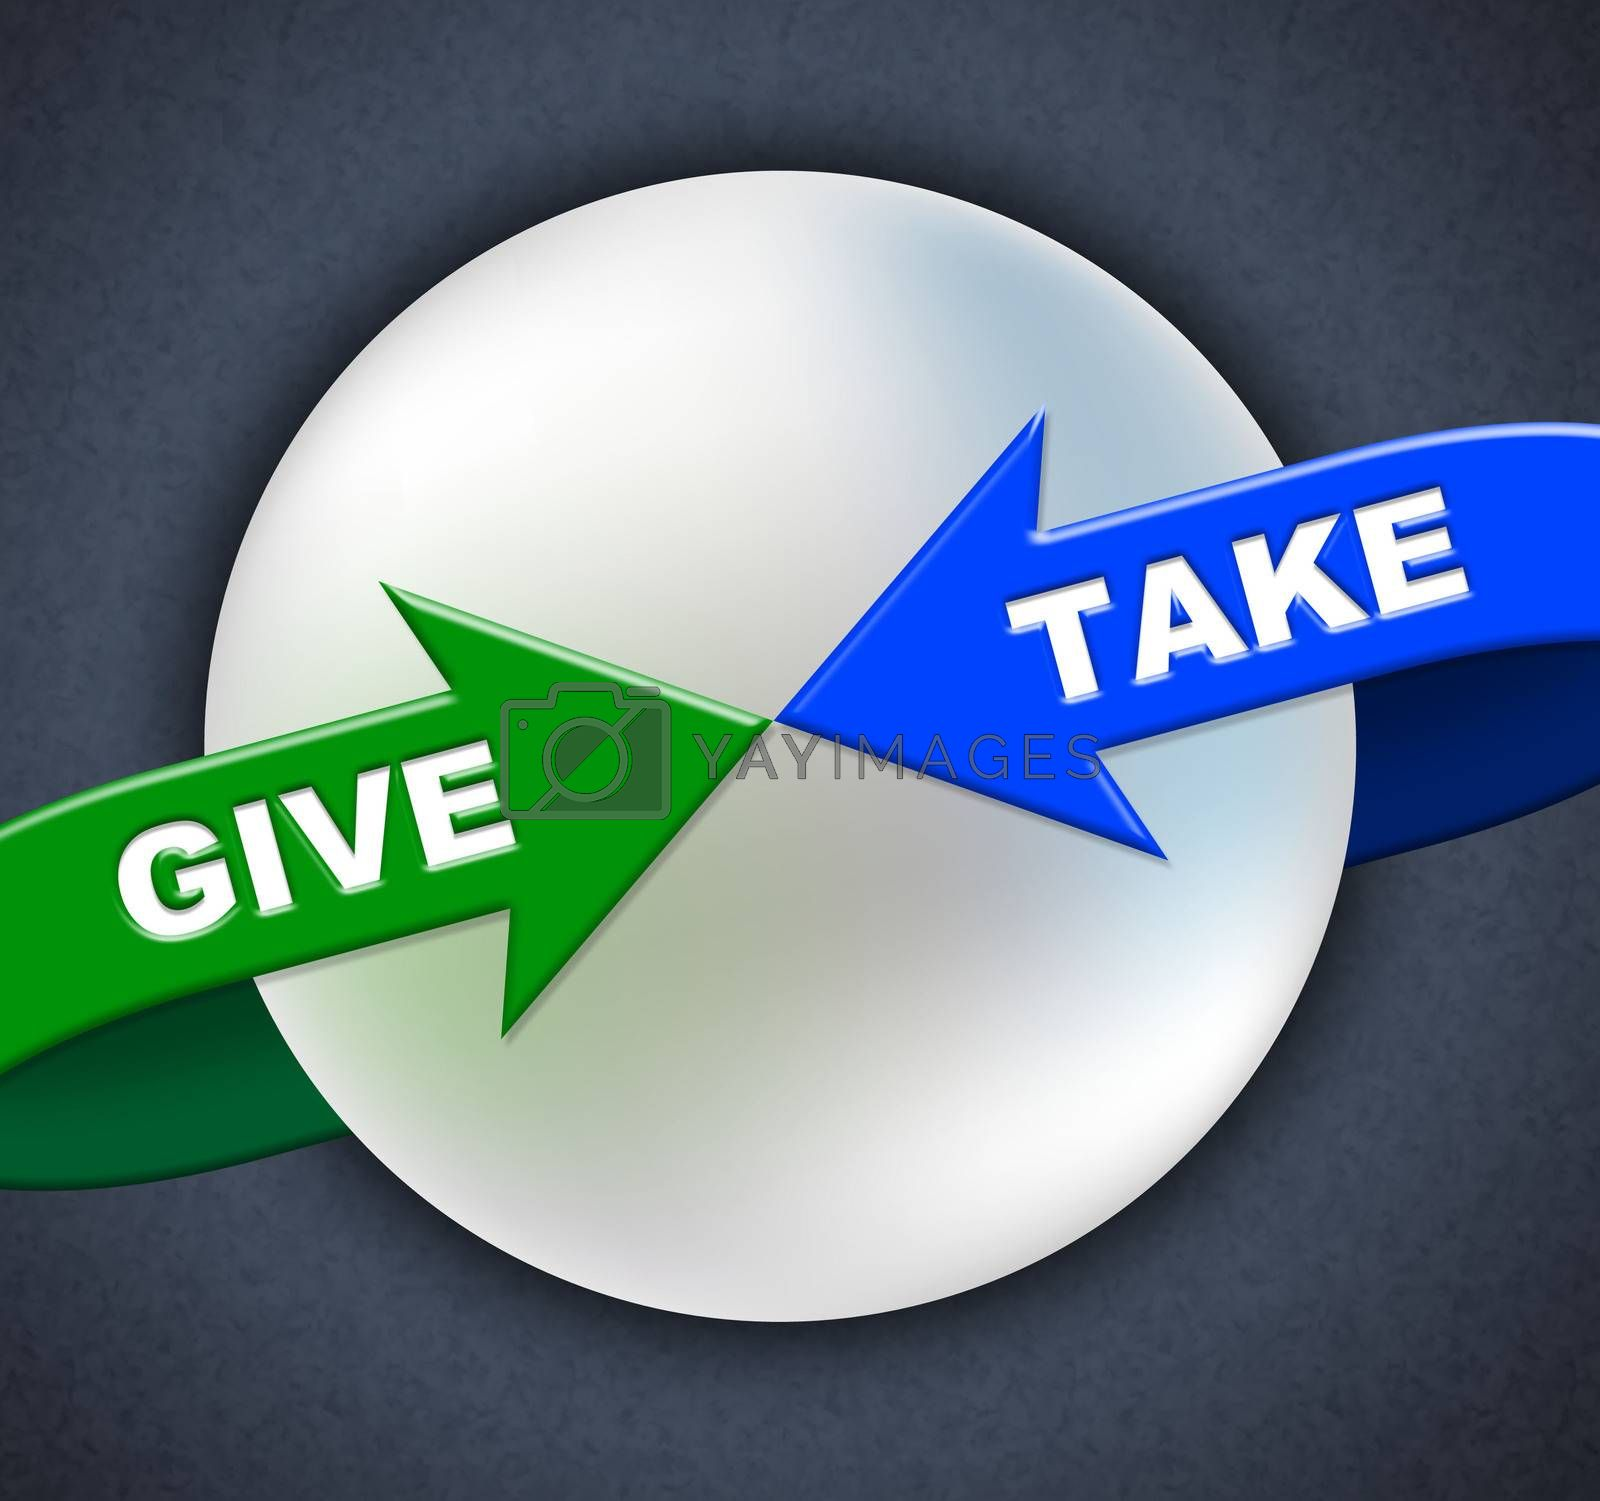 Give Take Arrows Shows Donated Proffer And Taking by stuartmiles